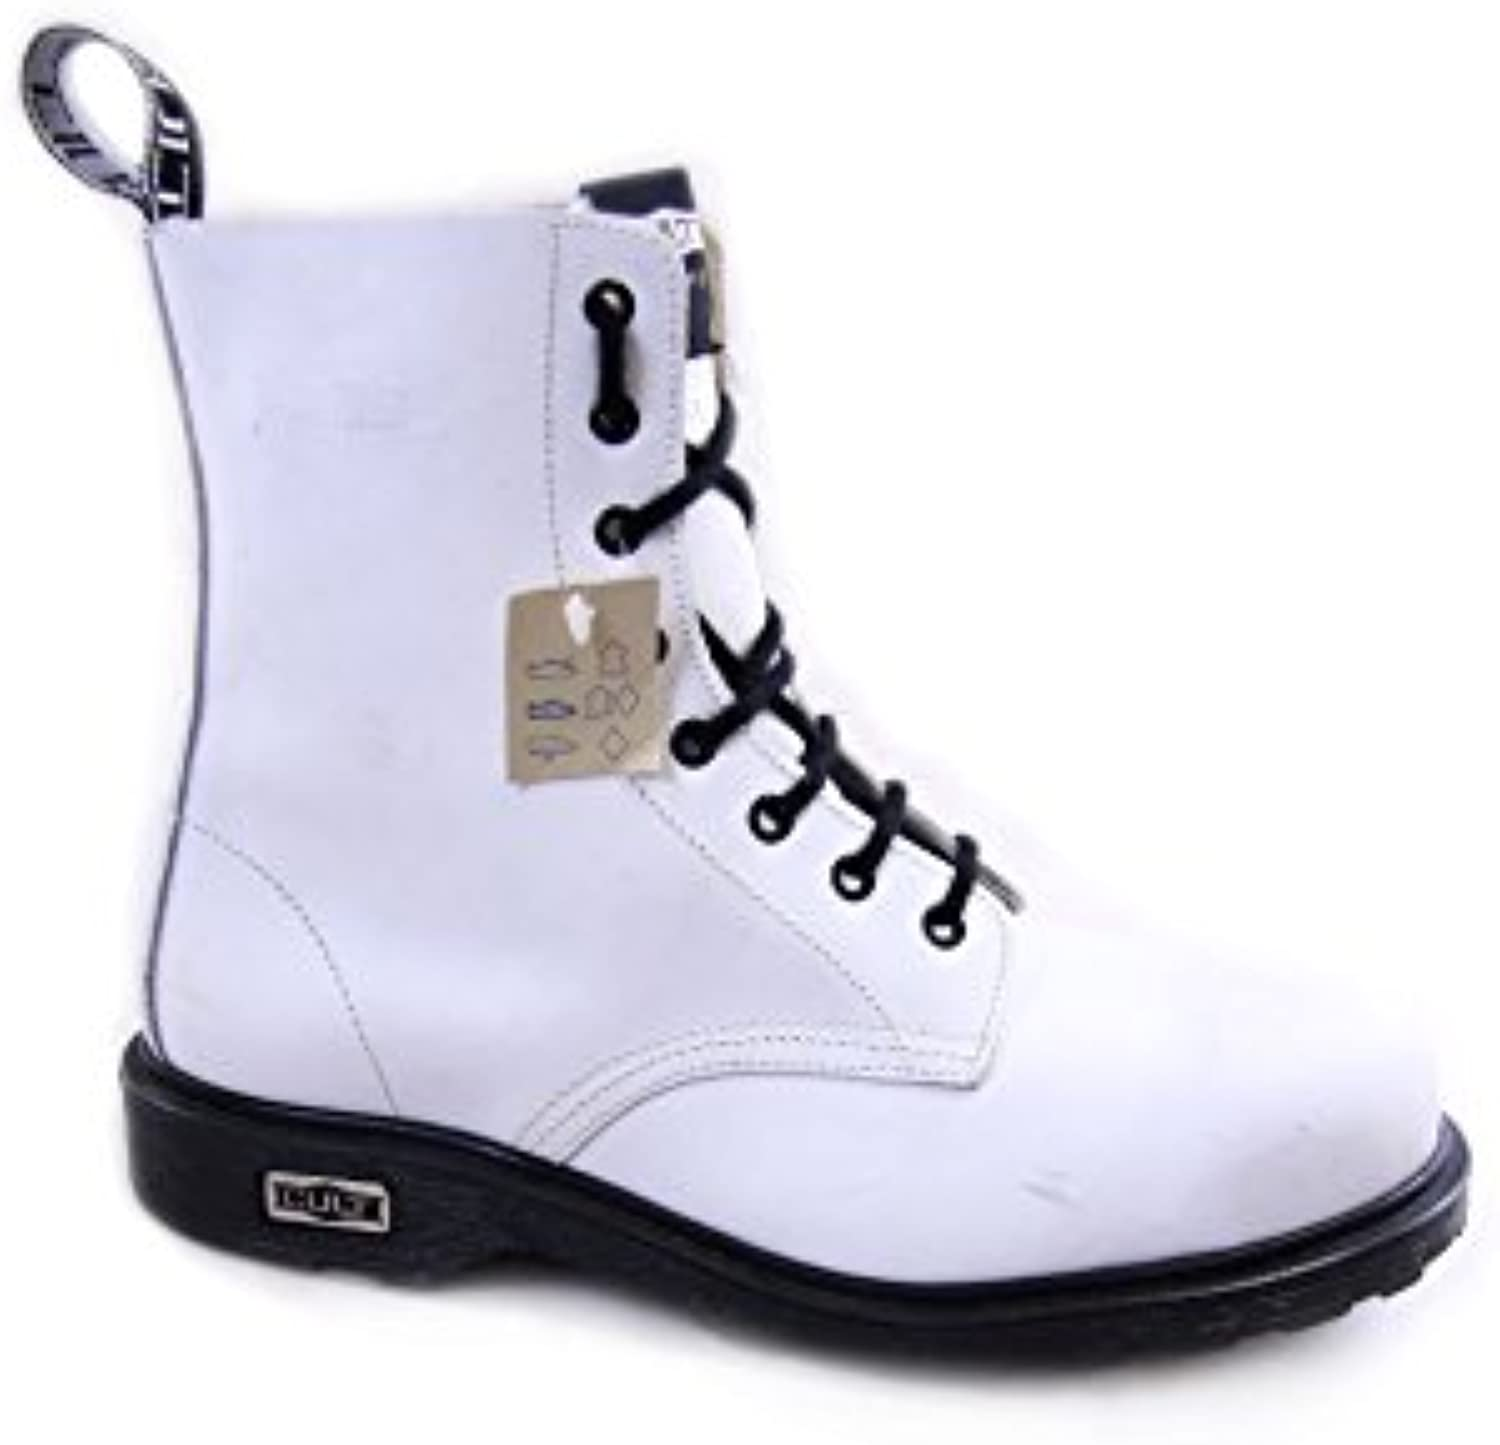 Cult Vintage Leather Boots Steel Toe mod. Bolt CL3663G8972 White EU43